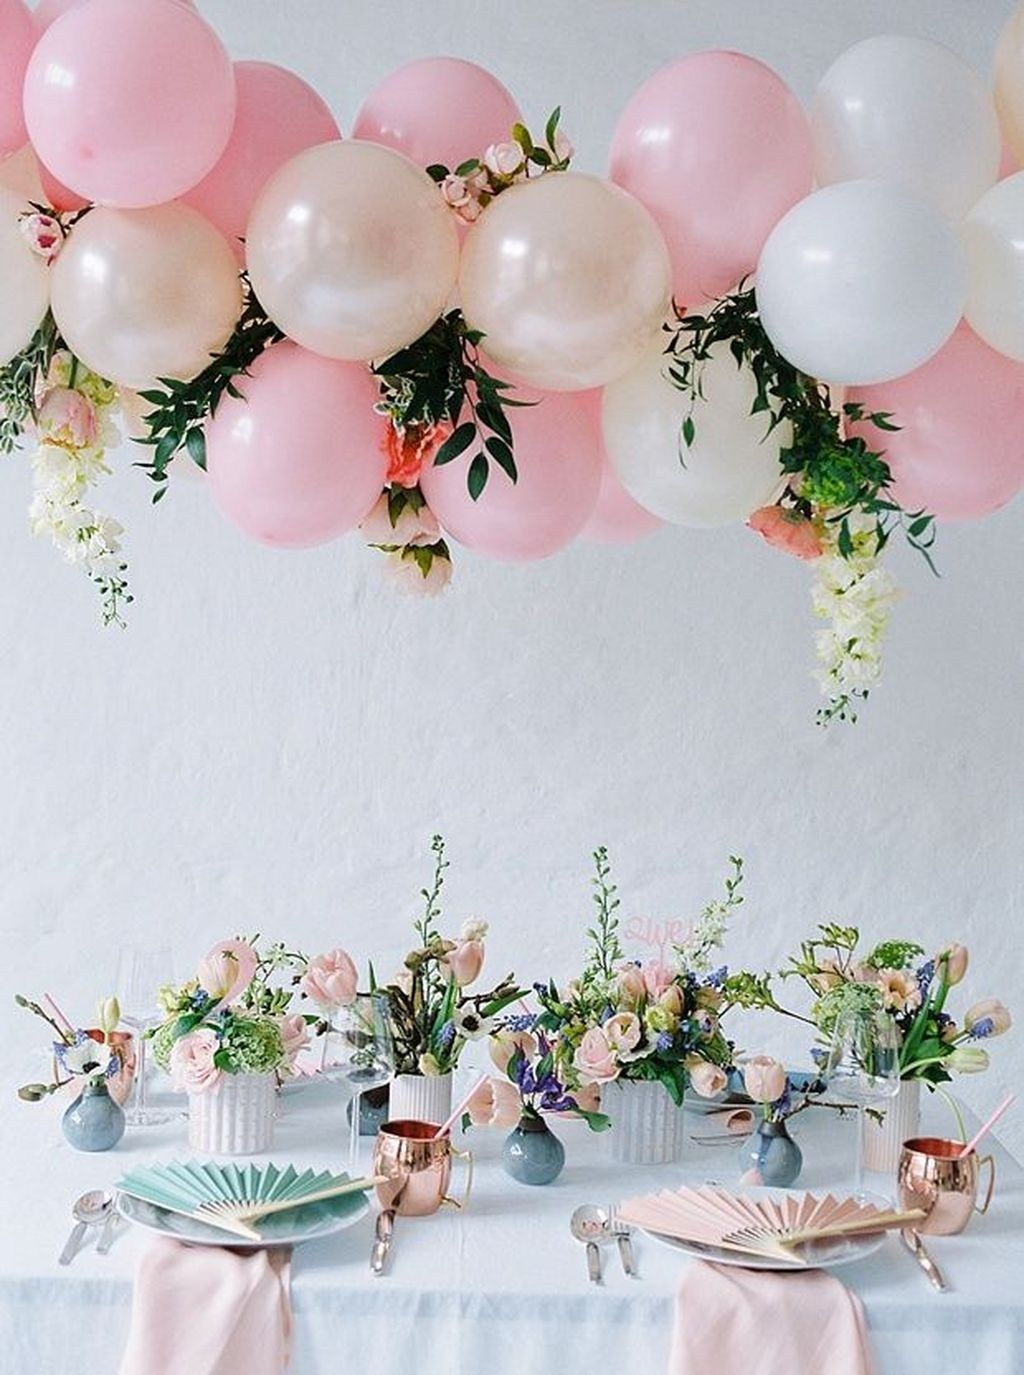 Simple And Beautiful Balloon Wedding Centerpieces Decoration Ideas ...